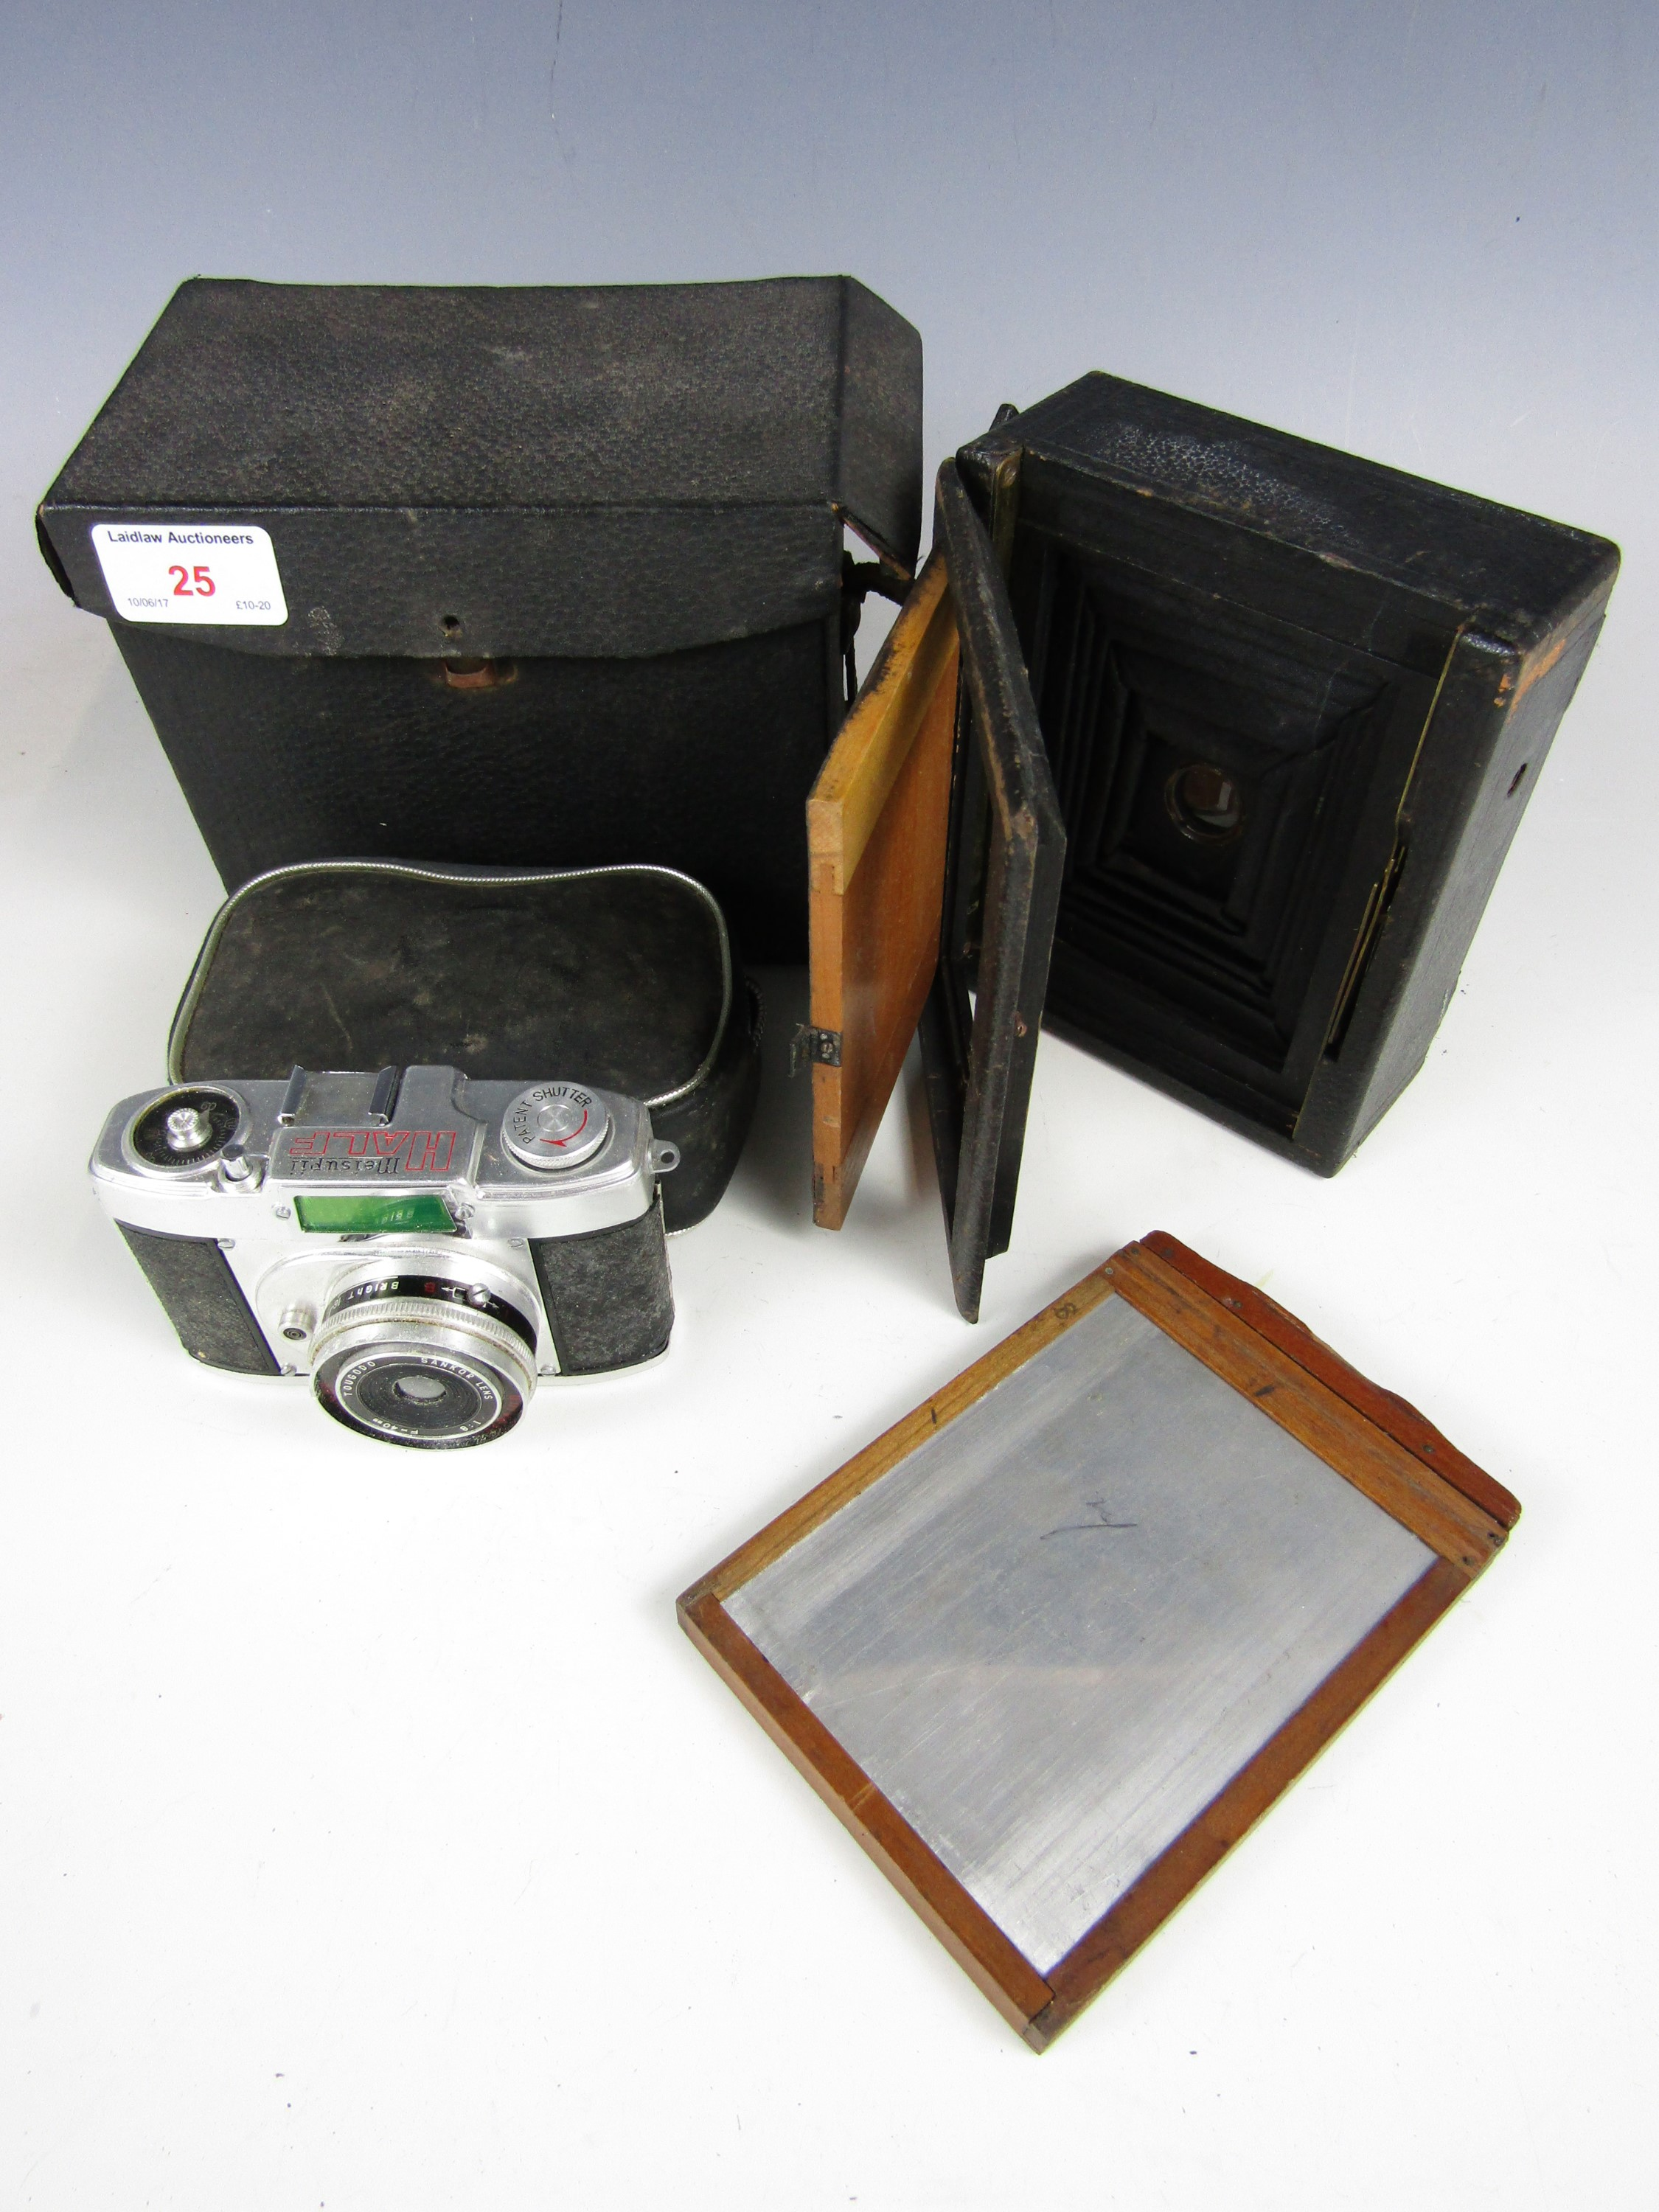 Lot 25 - A Victorian plate camera together with a cased Meisupii half-frame universal camera